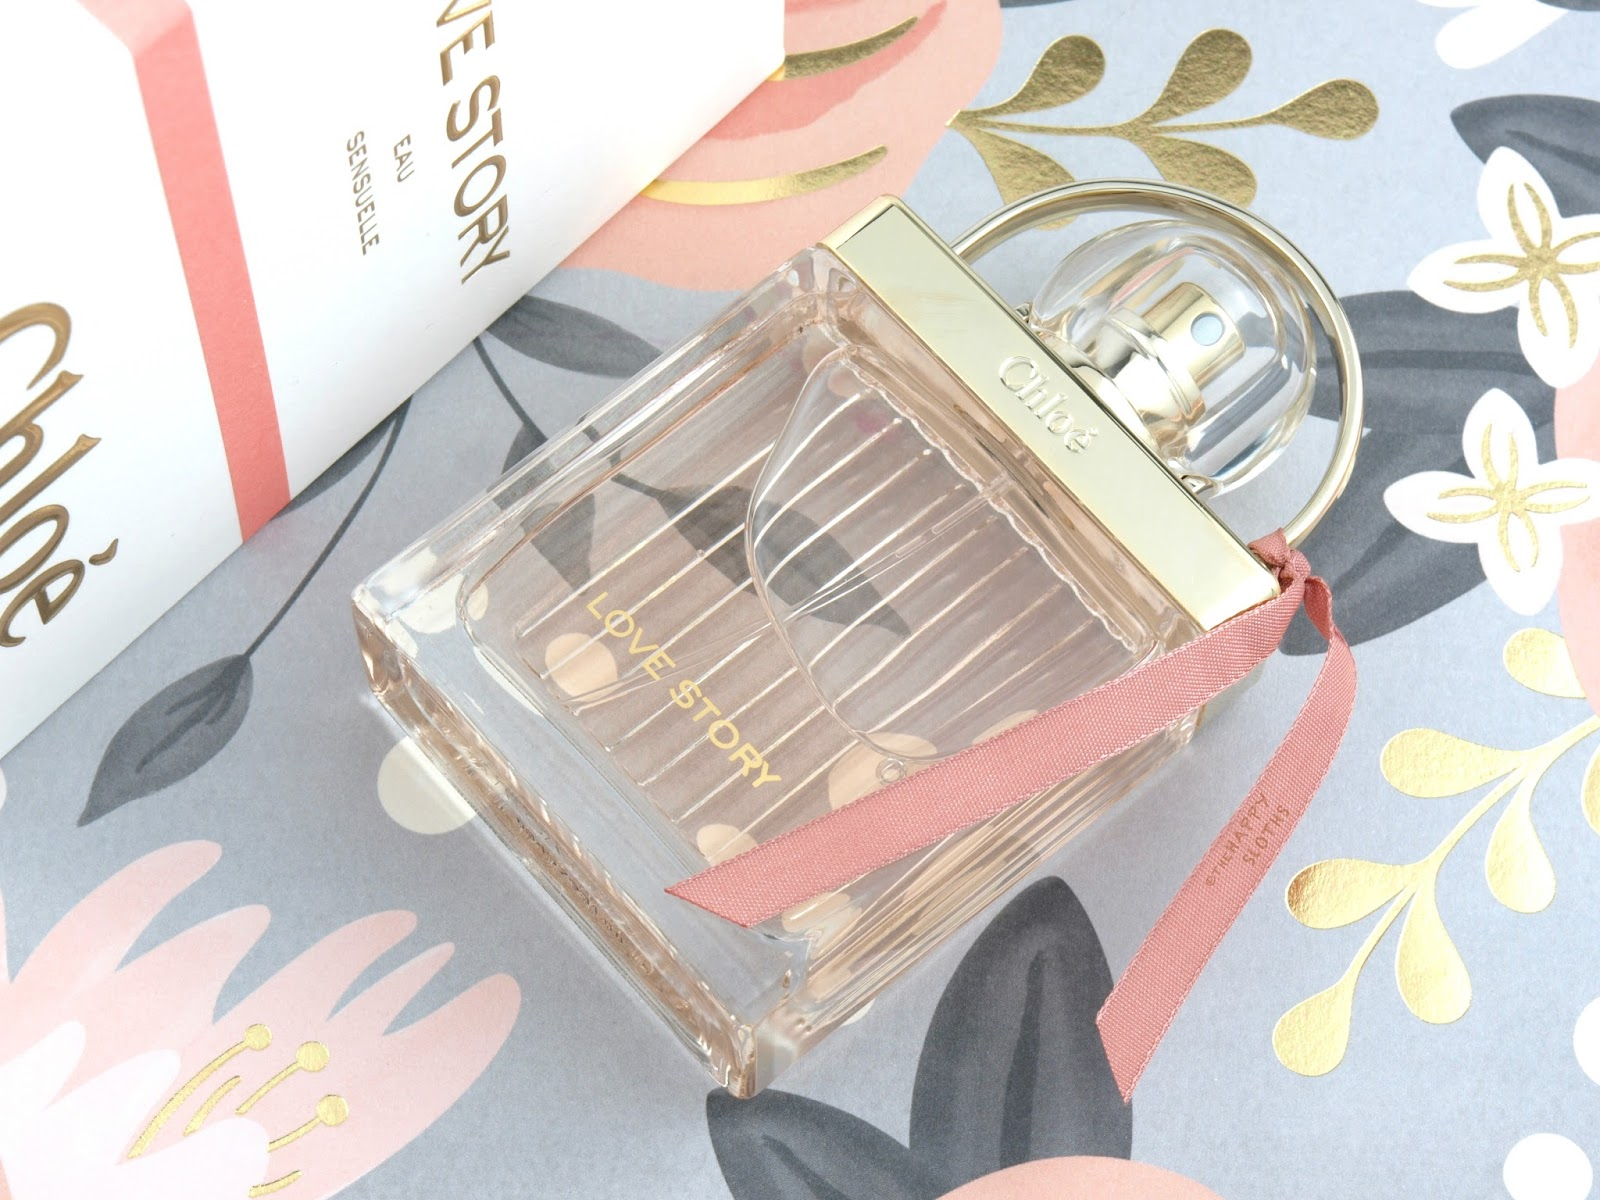 Chloe Love Story Eau Sensuelle: Review